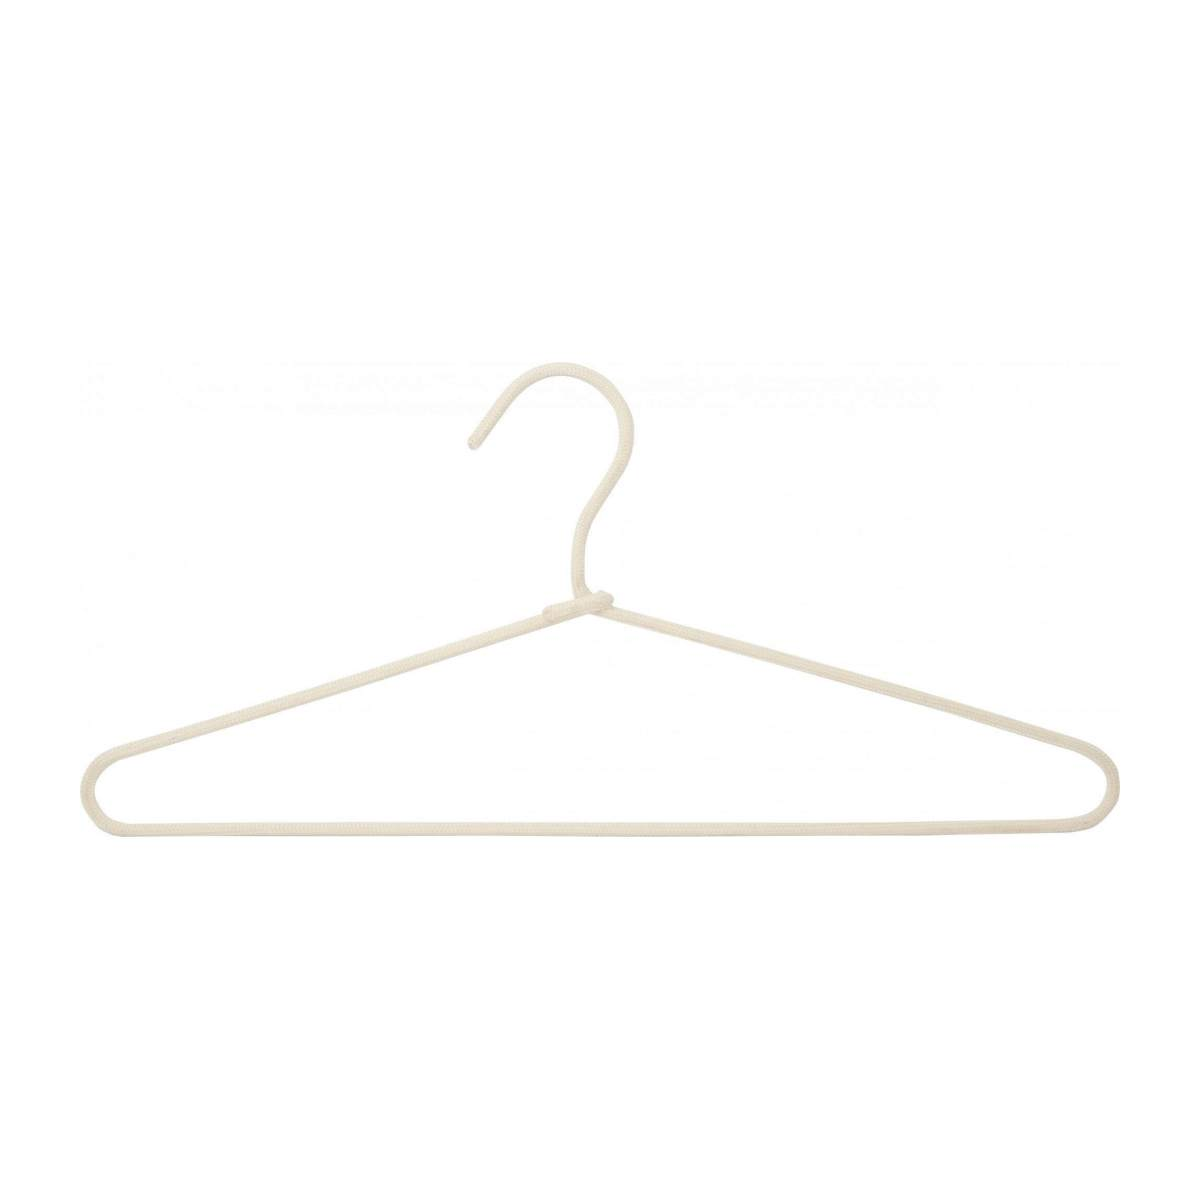 Hanger made of fabric n°1